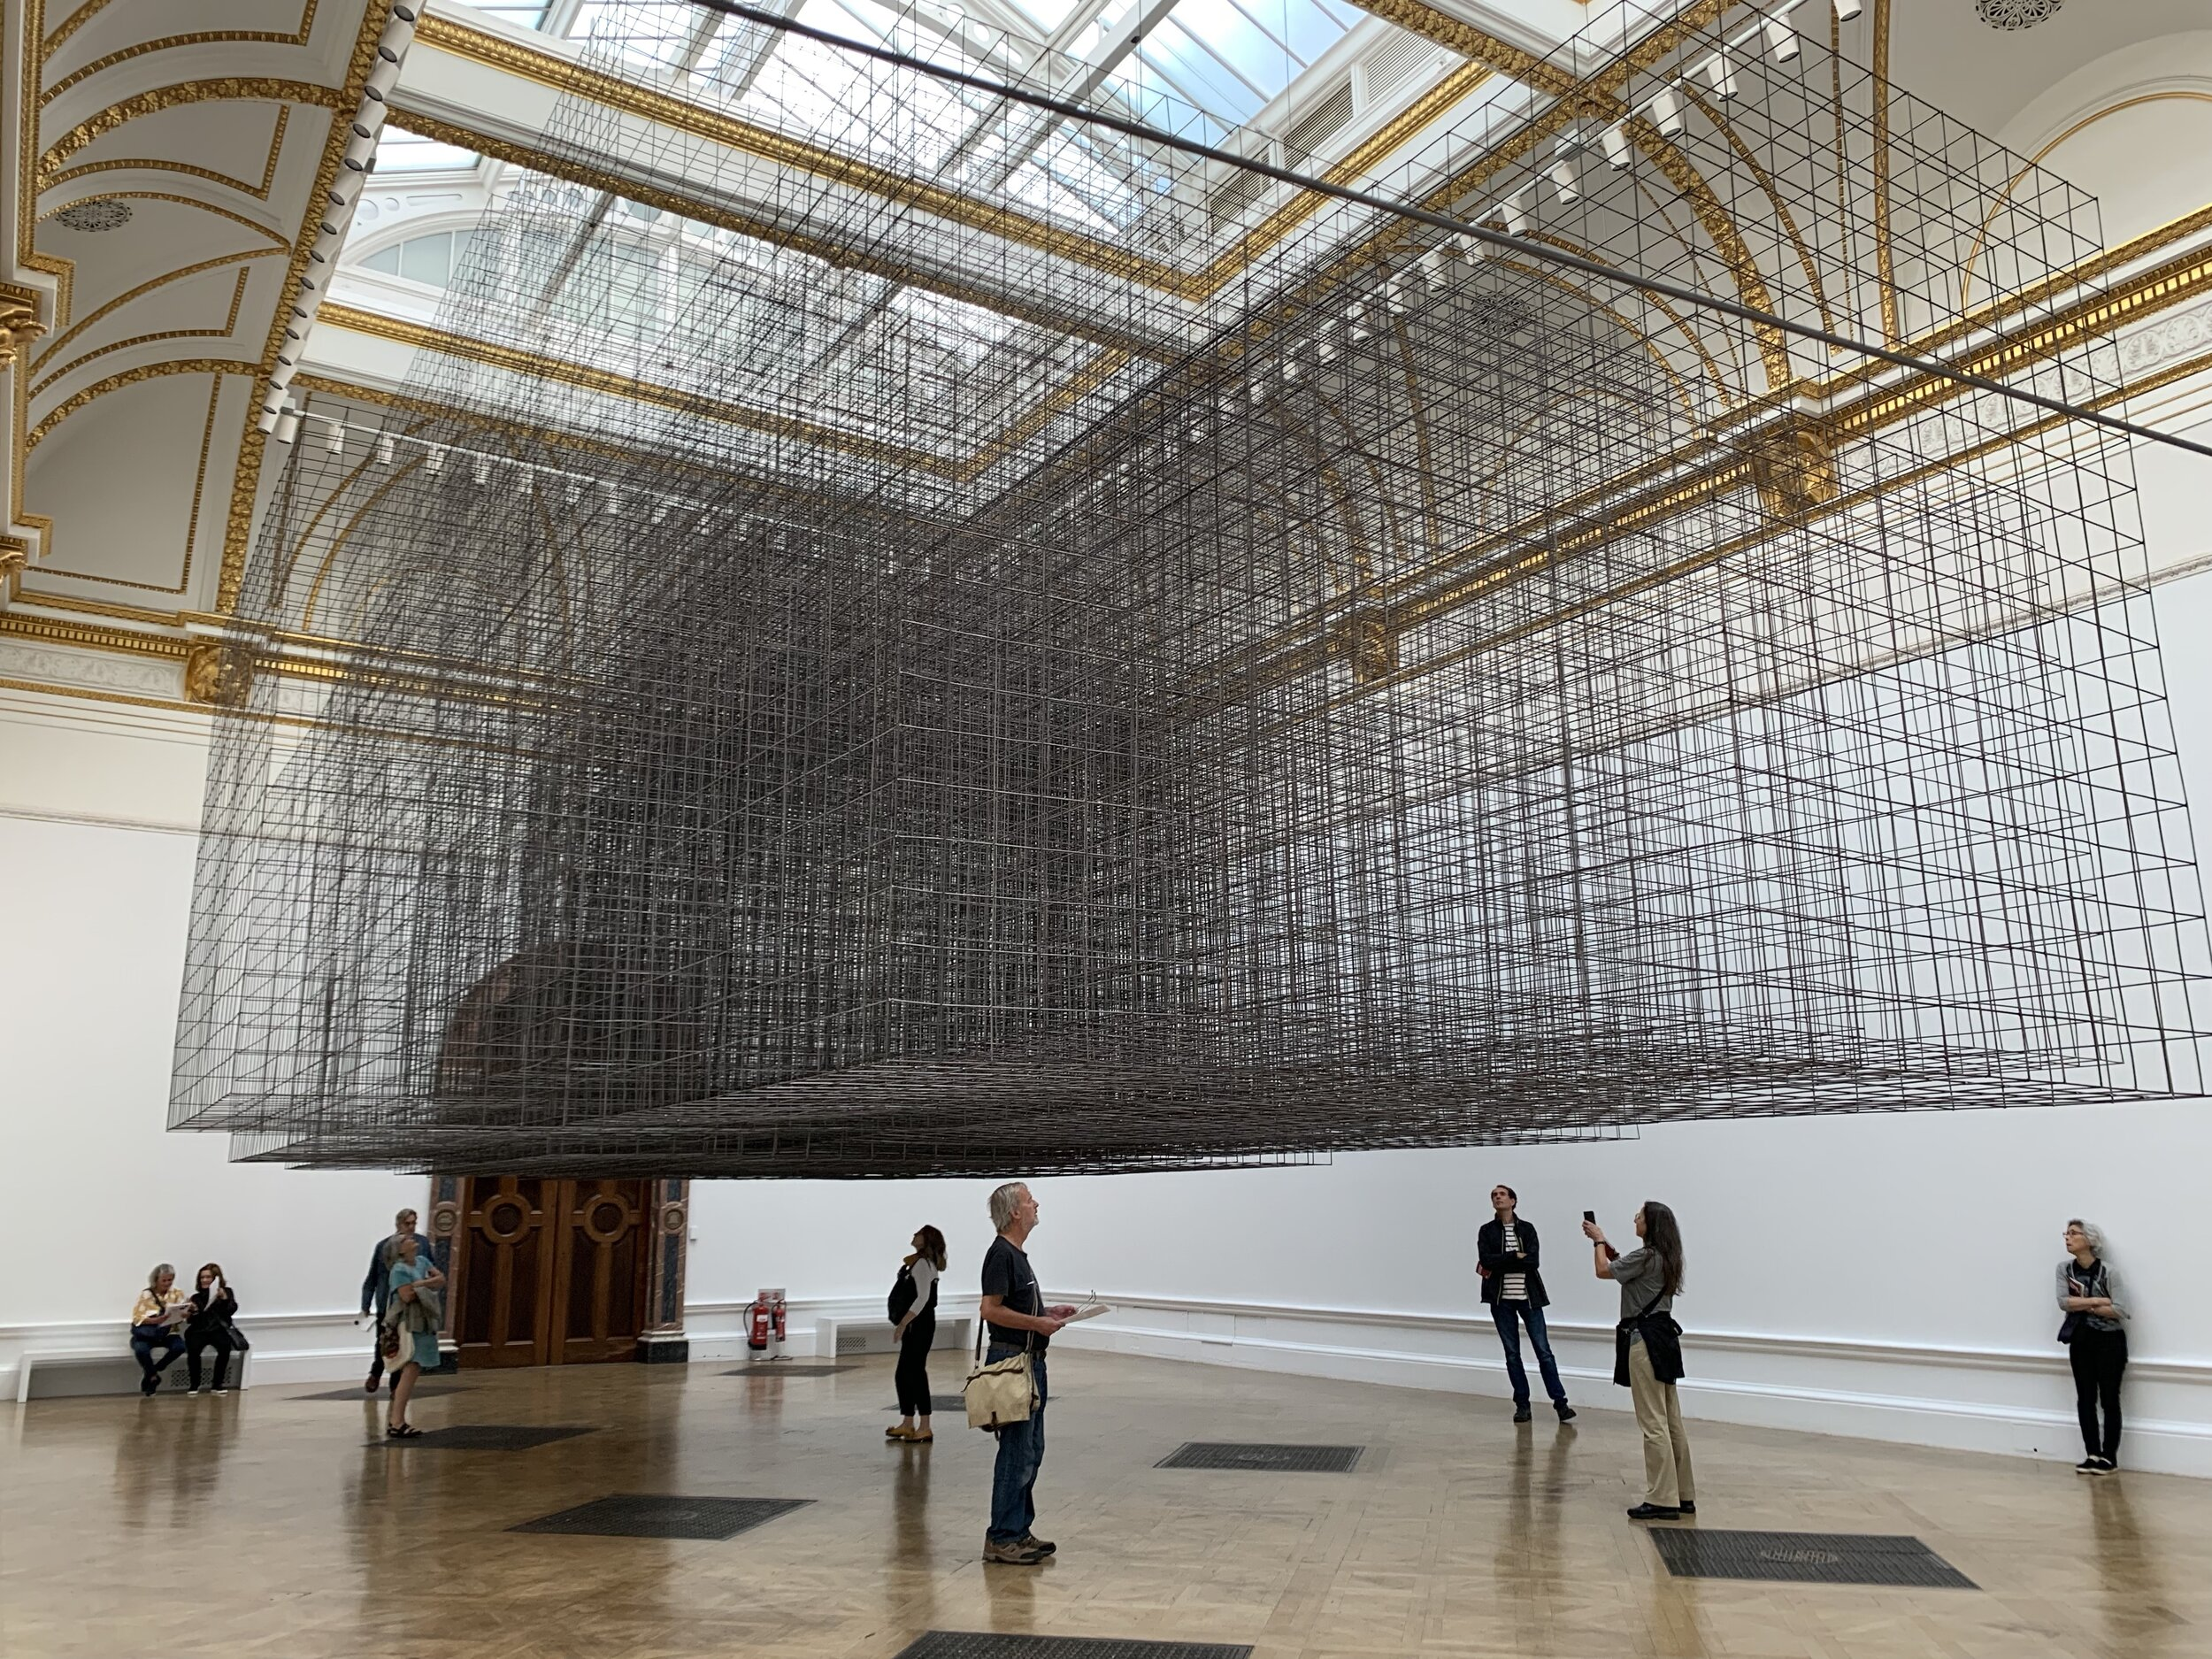 Matrix III is a gigantic suspended steel mesh labyrinth that Gormley designed especially for the largest of the Royal Academy galleries